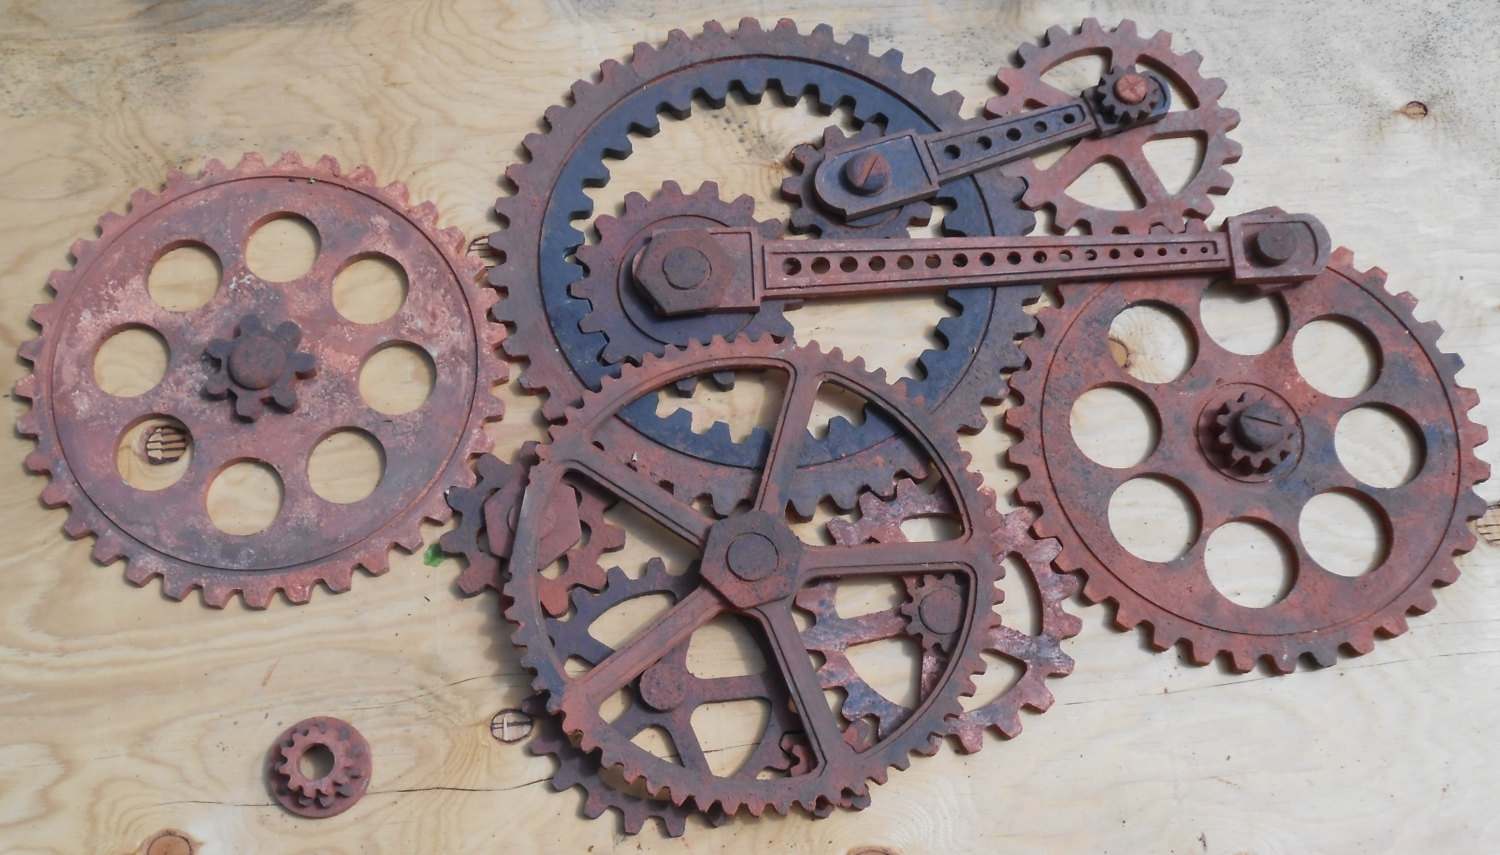 Steampunk Wall Decor | Home Design intended for Steampunk Wall Art (Image 16 of 20)